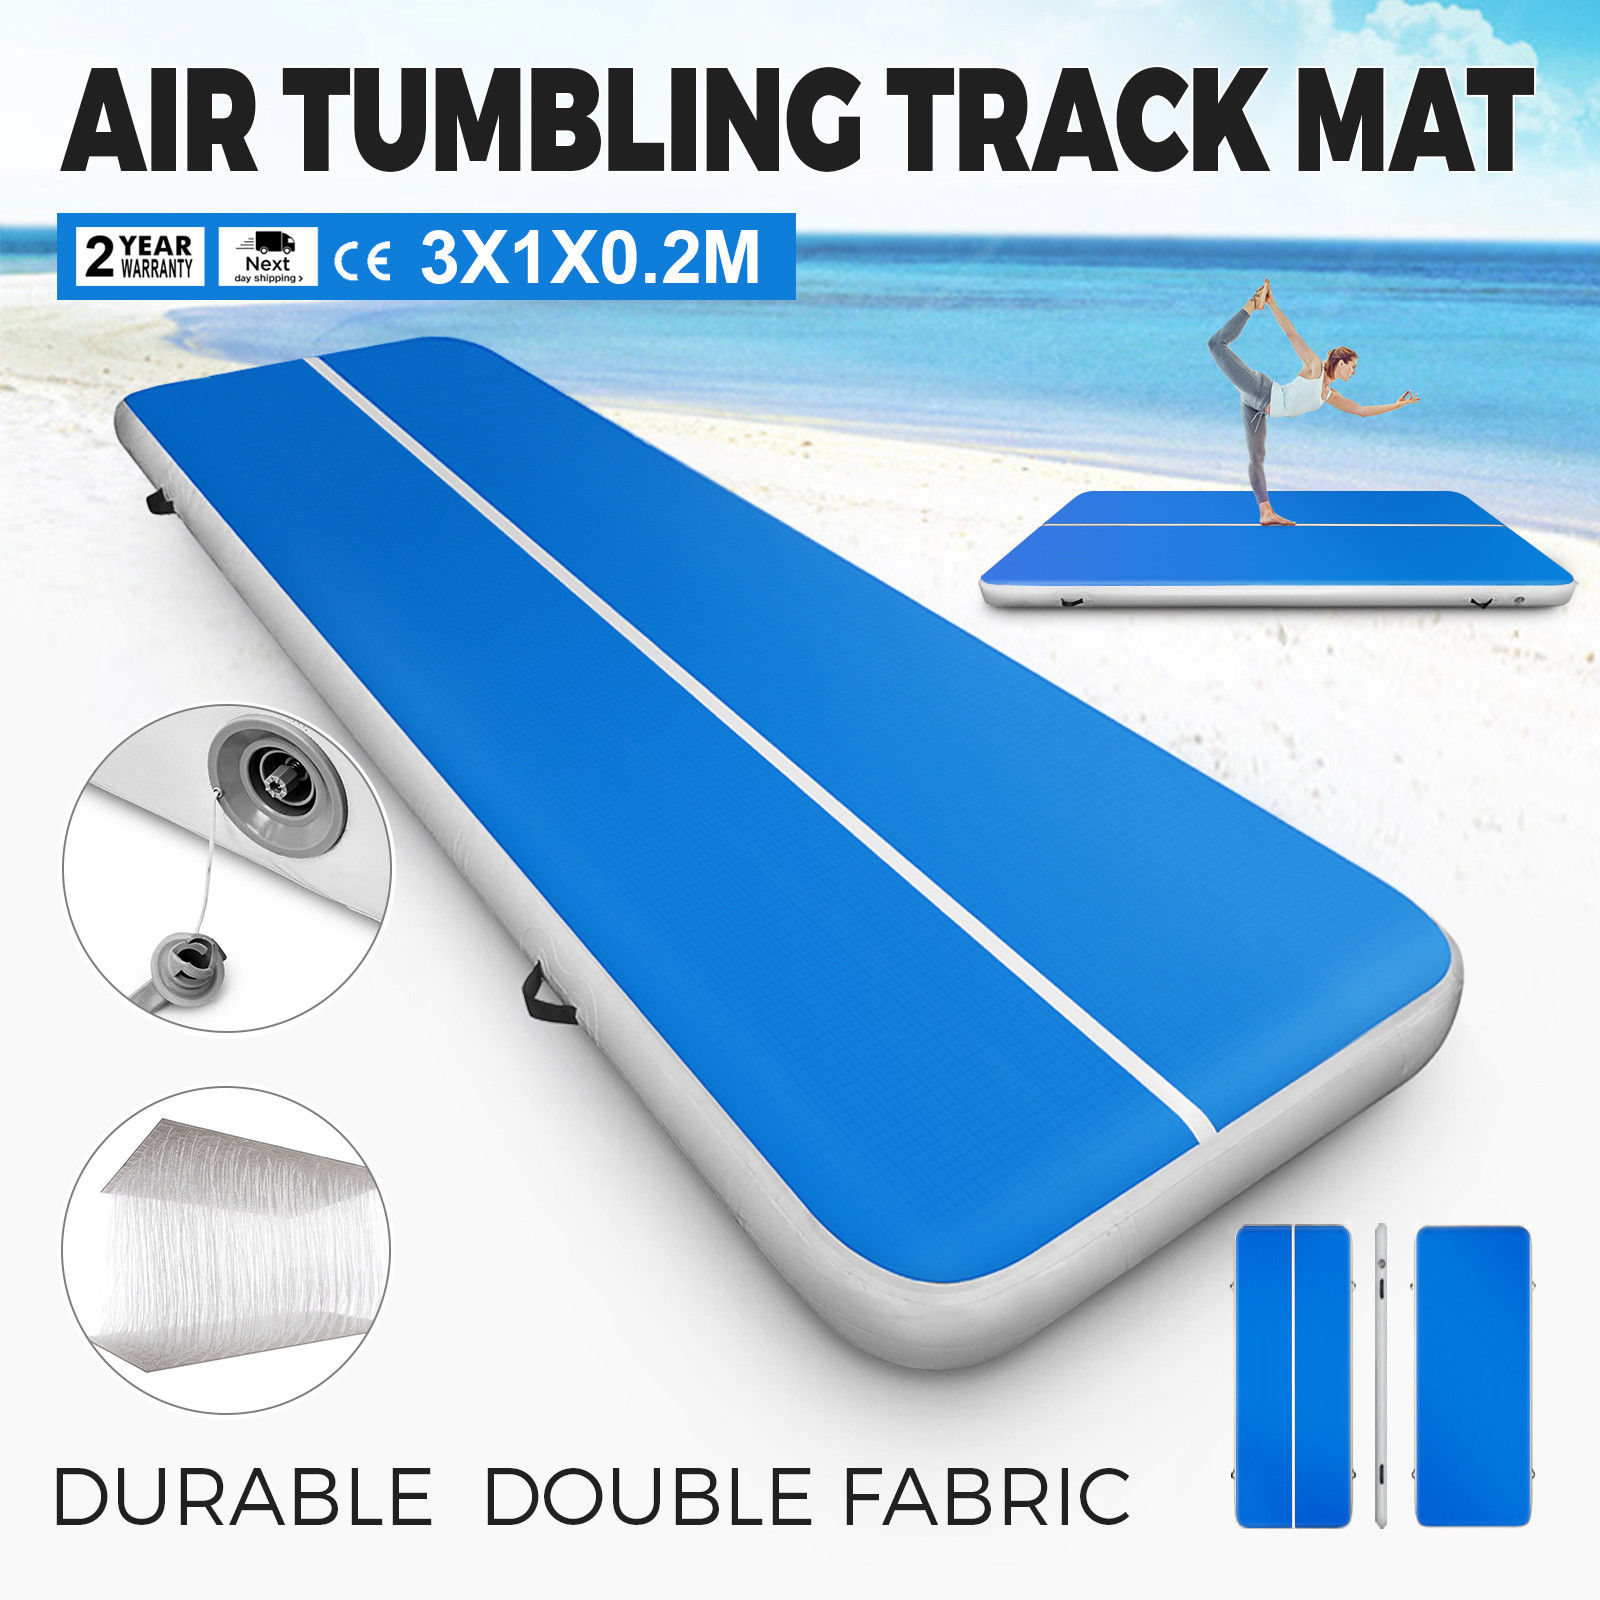 Vevor 3M Blue Inflatable Air Tumbling Track GYM Exercise Mat Yoga Mat